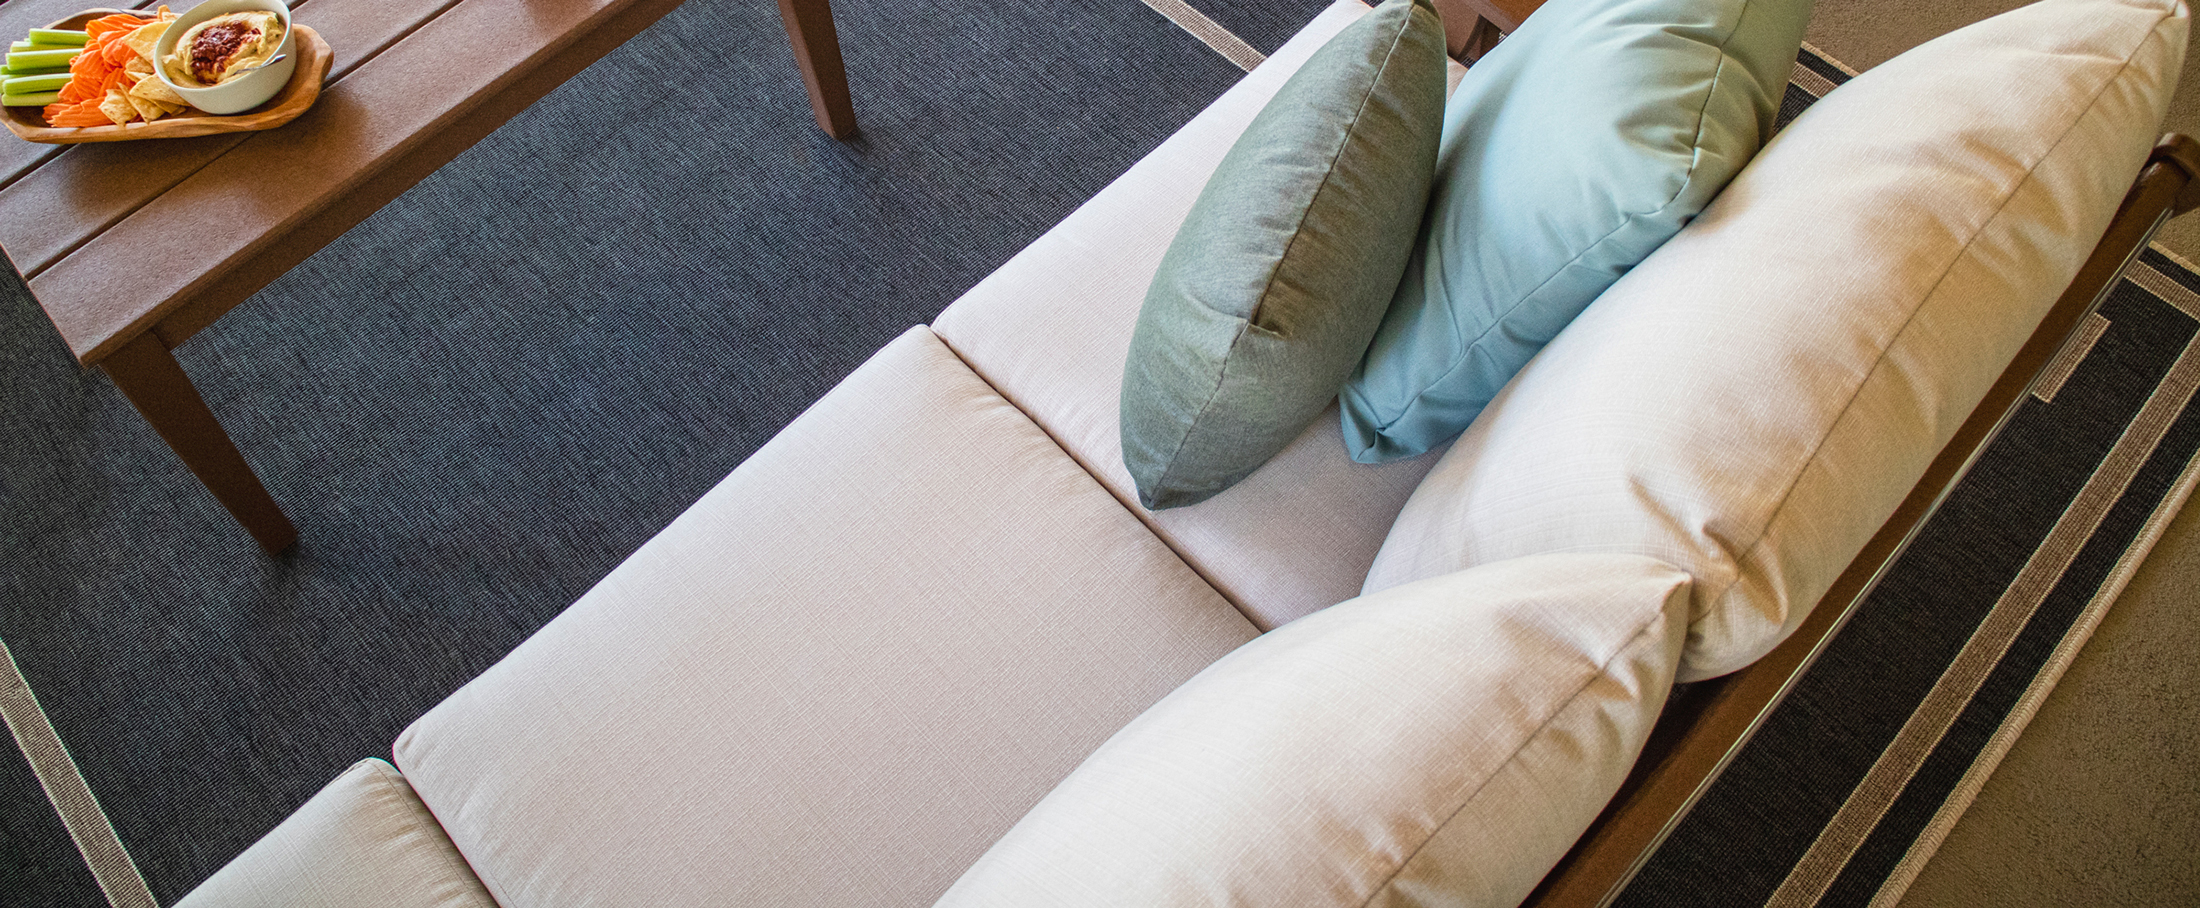 Tips on choosing the best fabric for your garden chair cushions